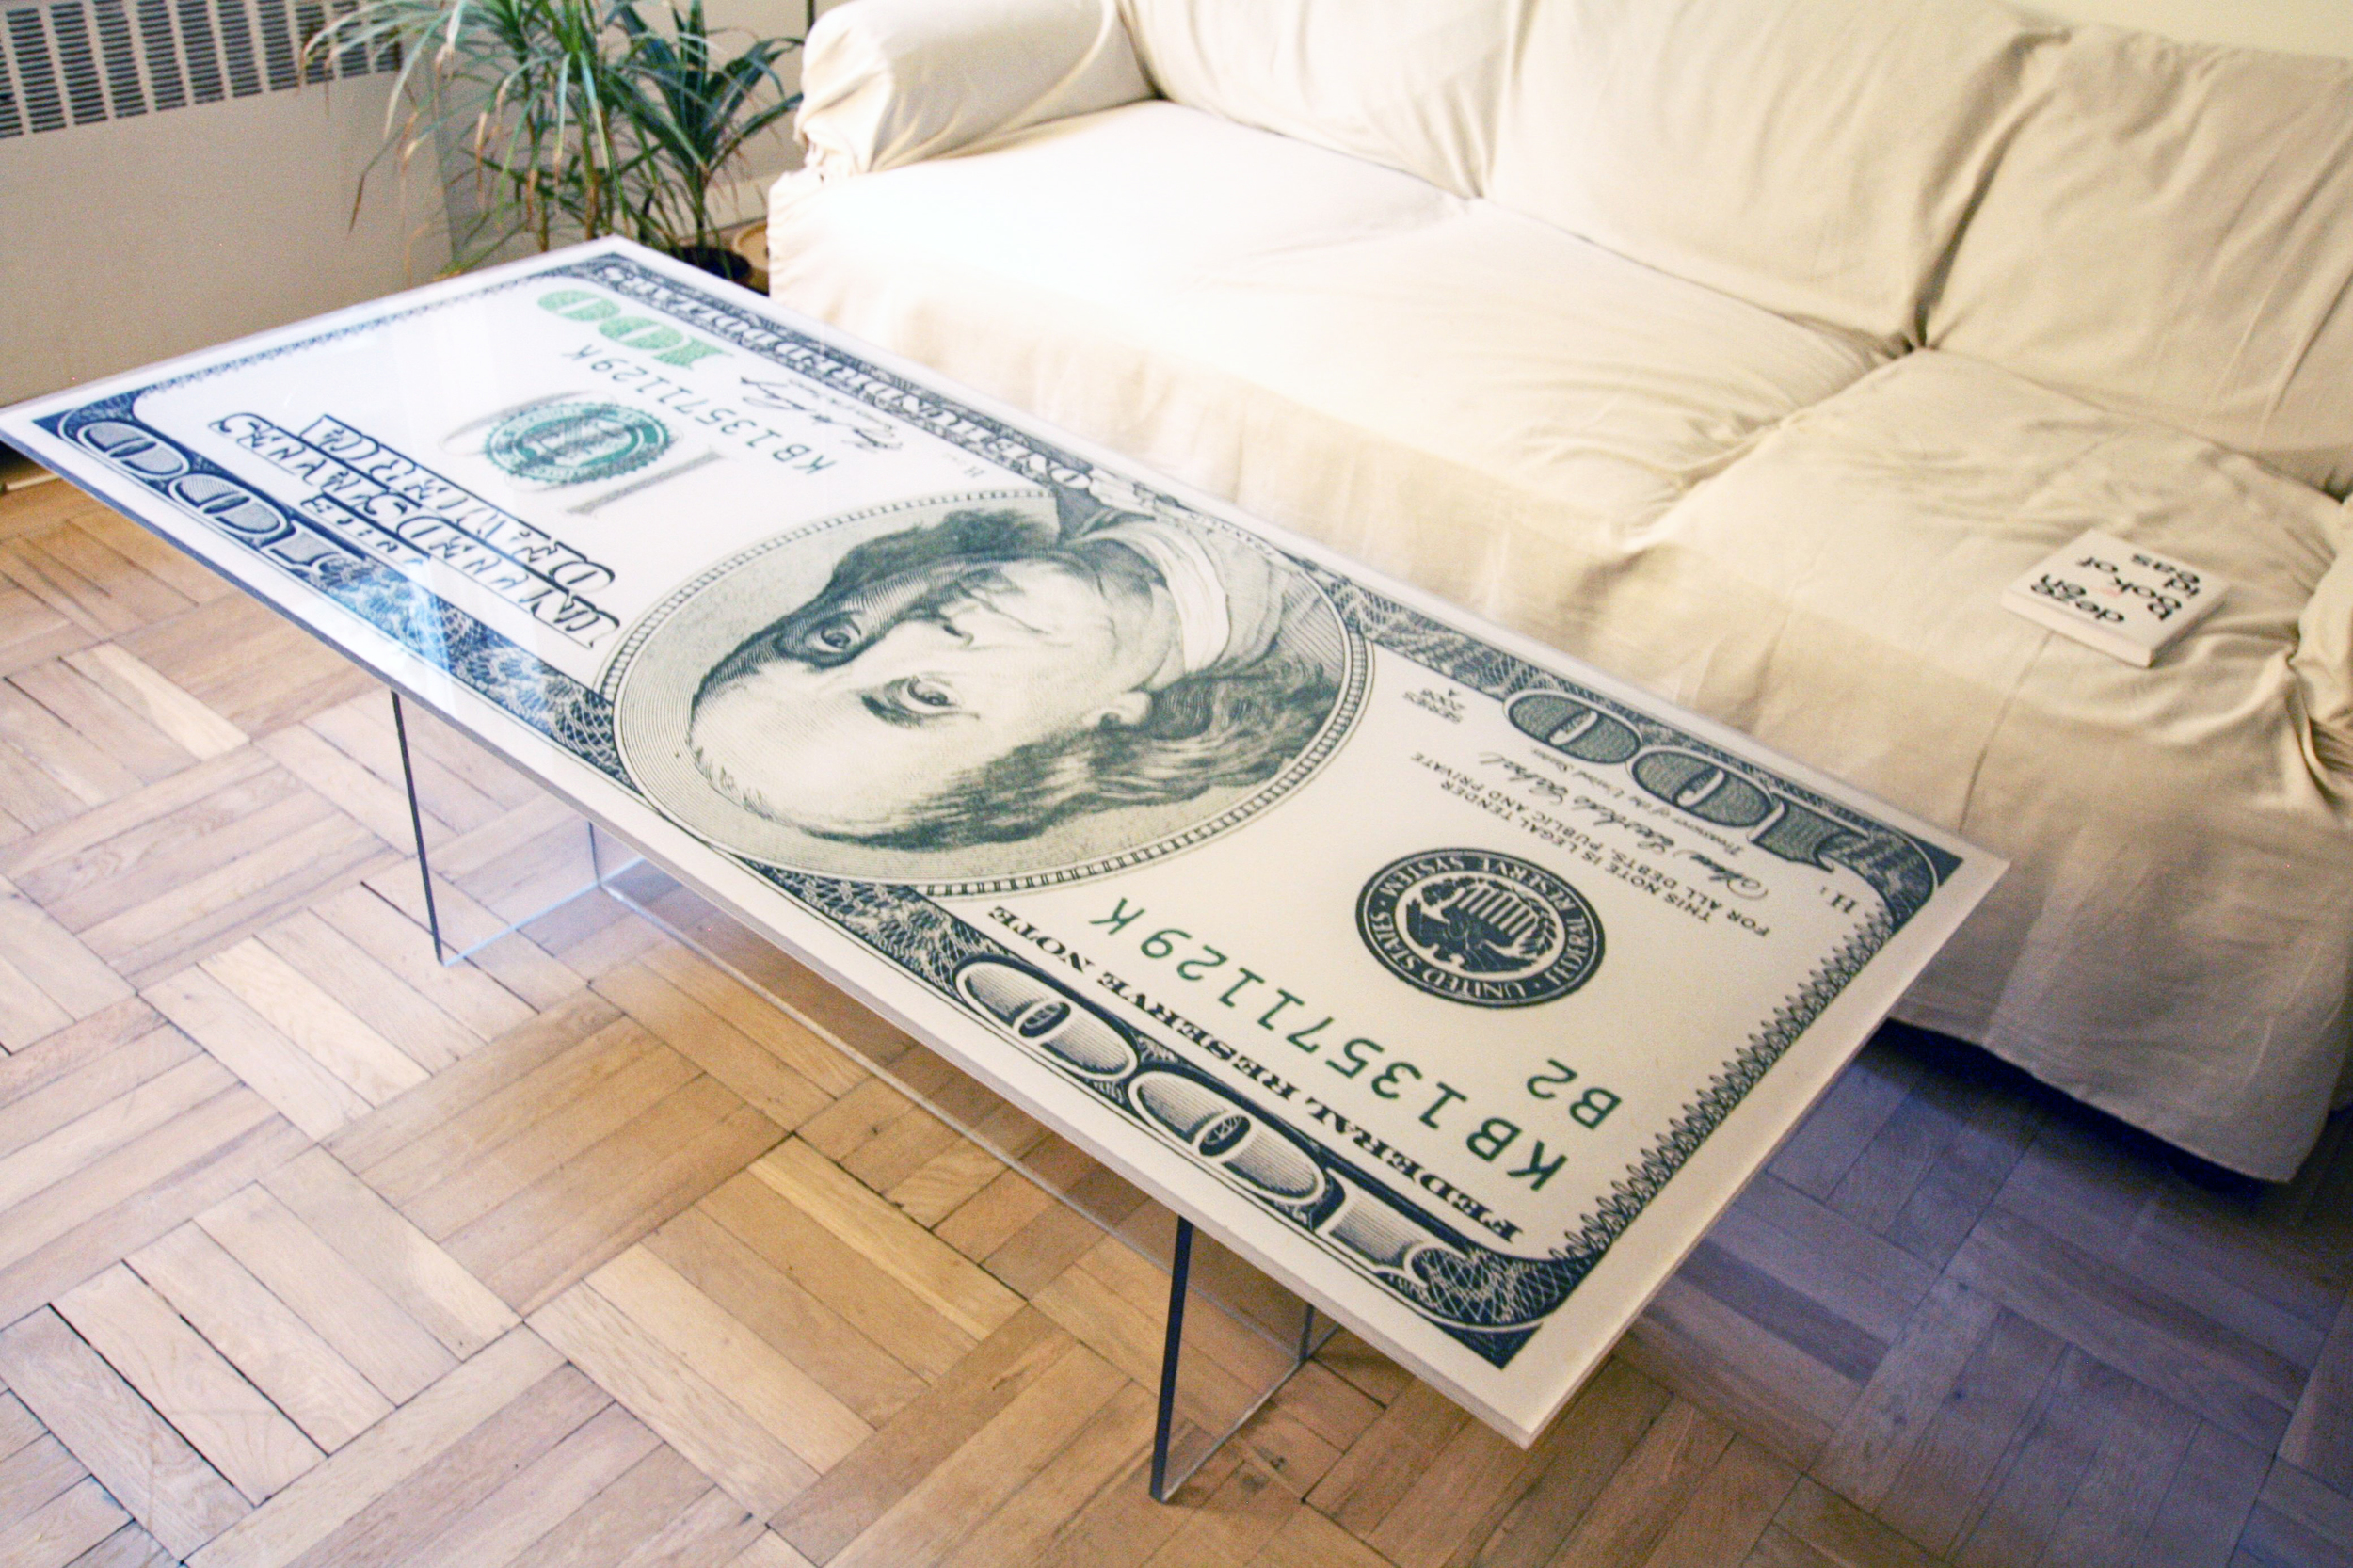 'The Benjamin' Custom-Designed Polycarbonate Coffee Table